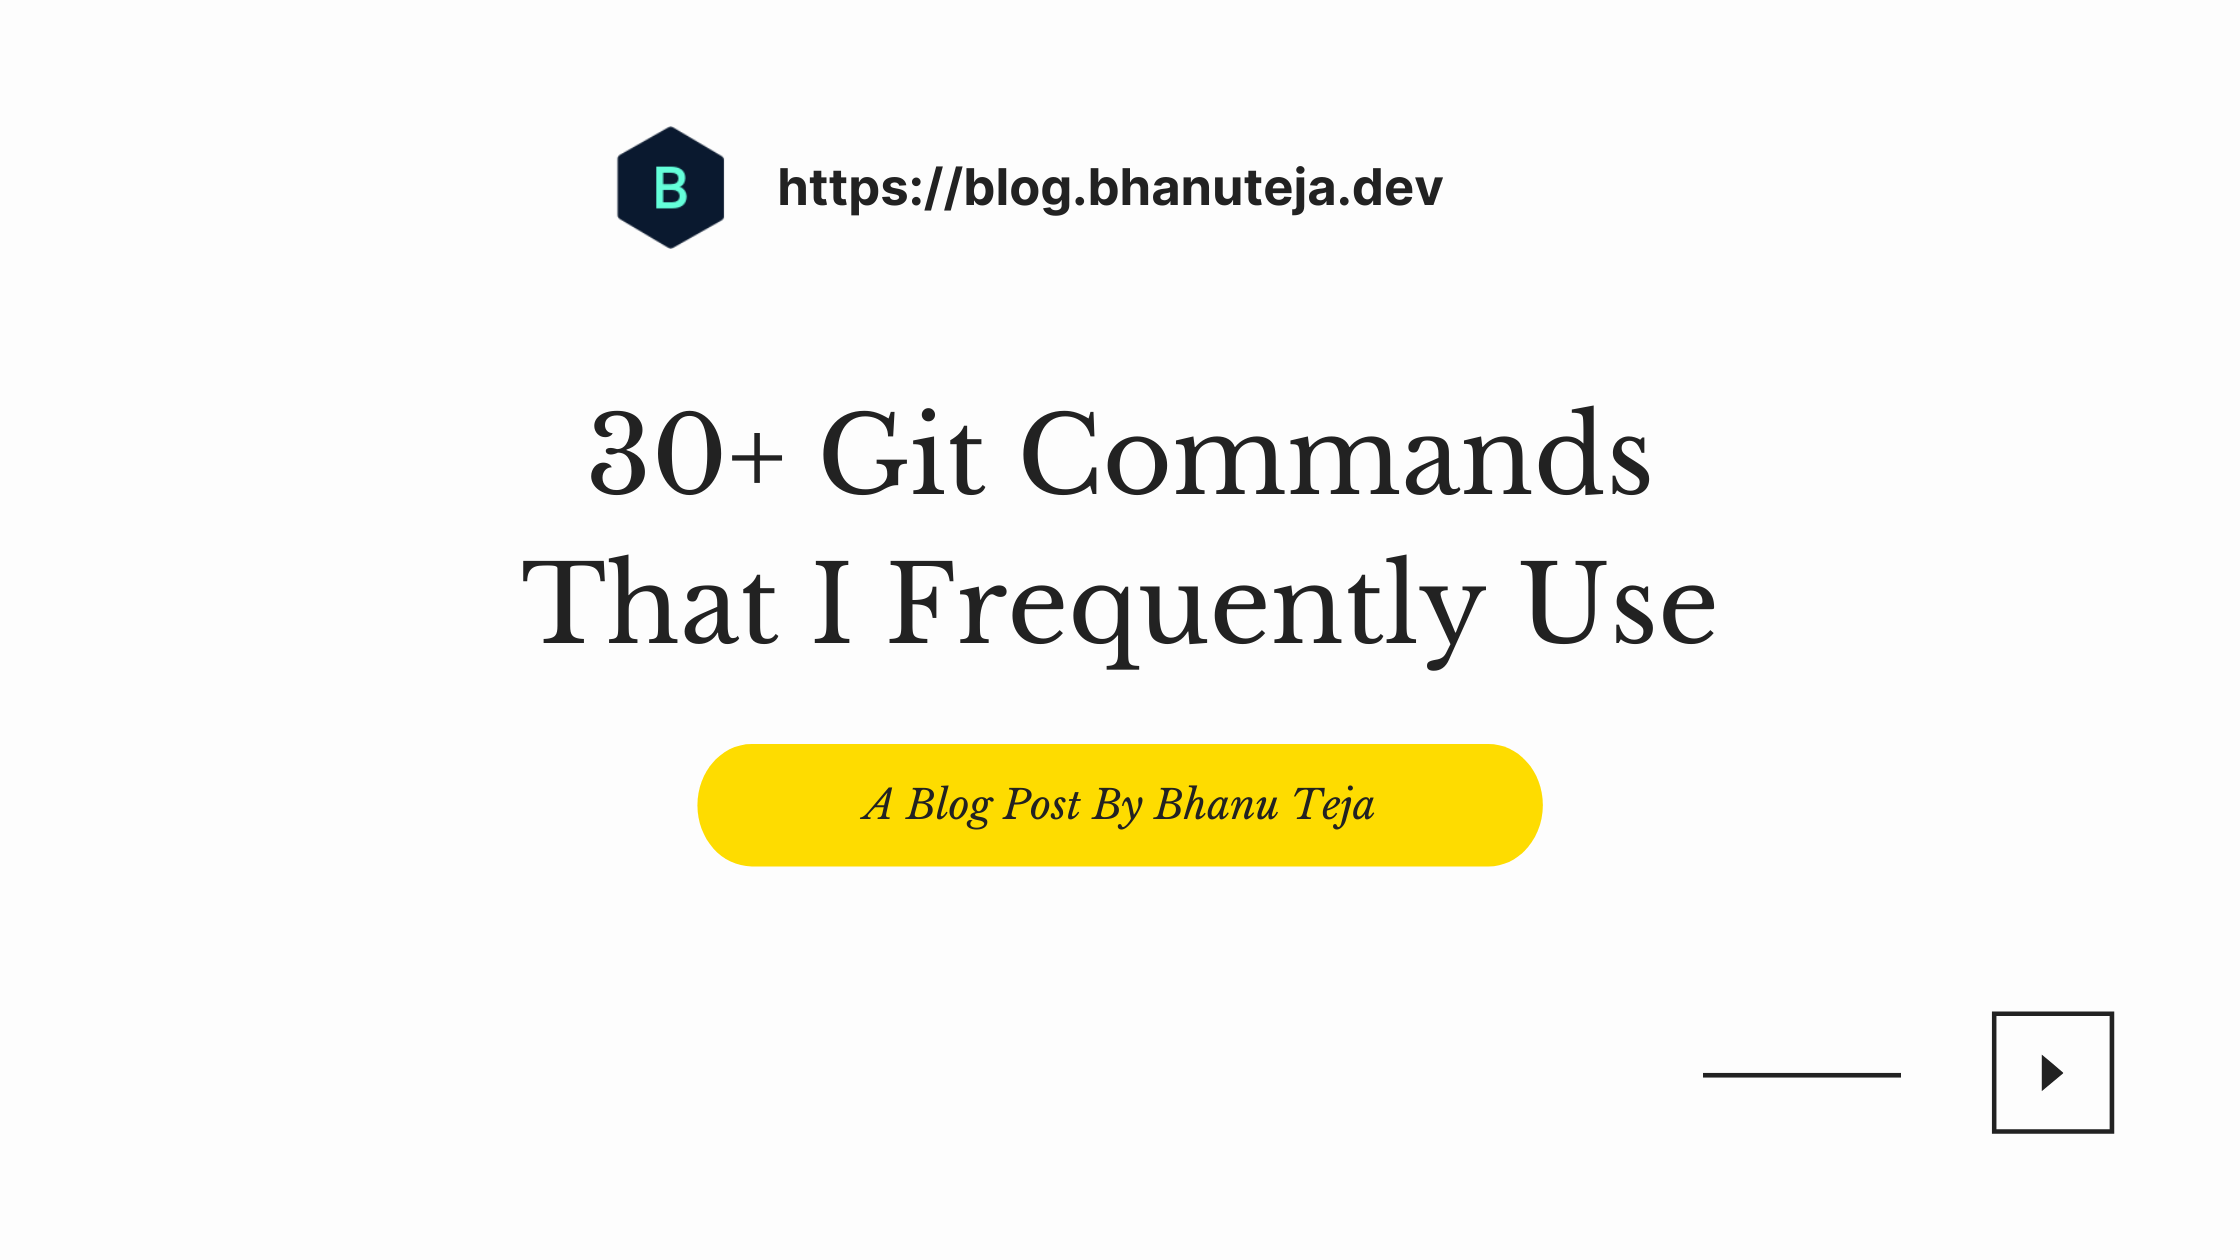 30+ Git Commands That I Frequently Use